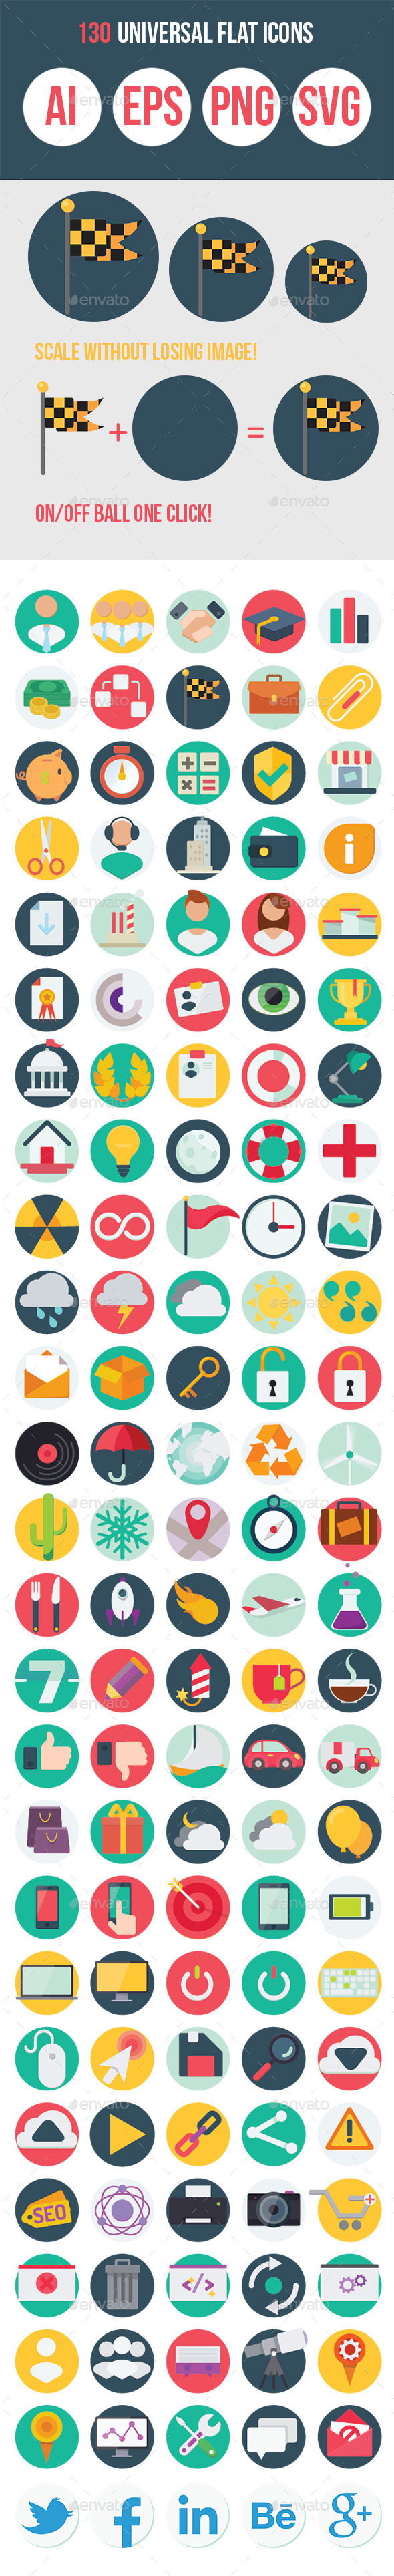 GraphicRiver 130 Universal Flat Icons 10318121